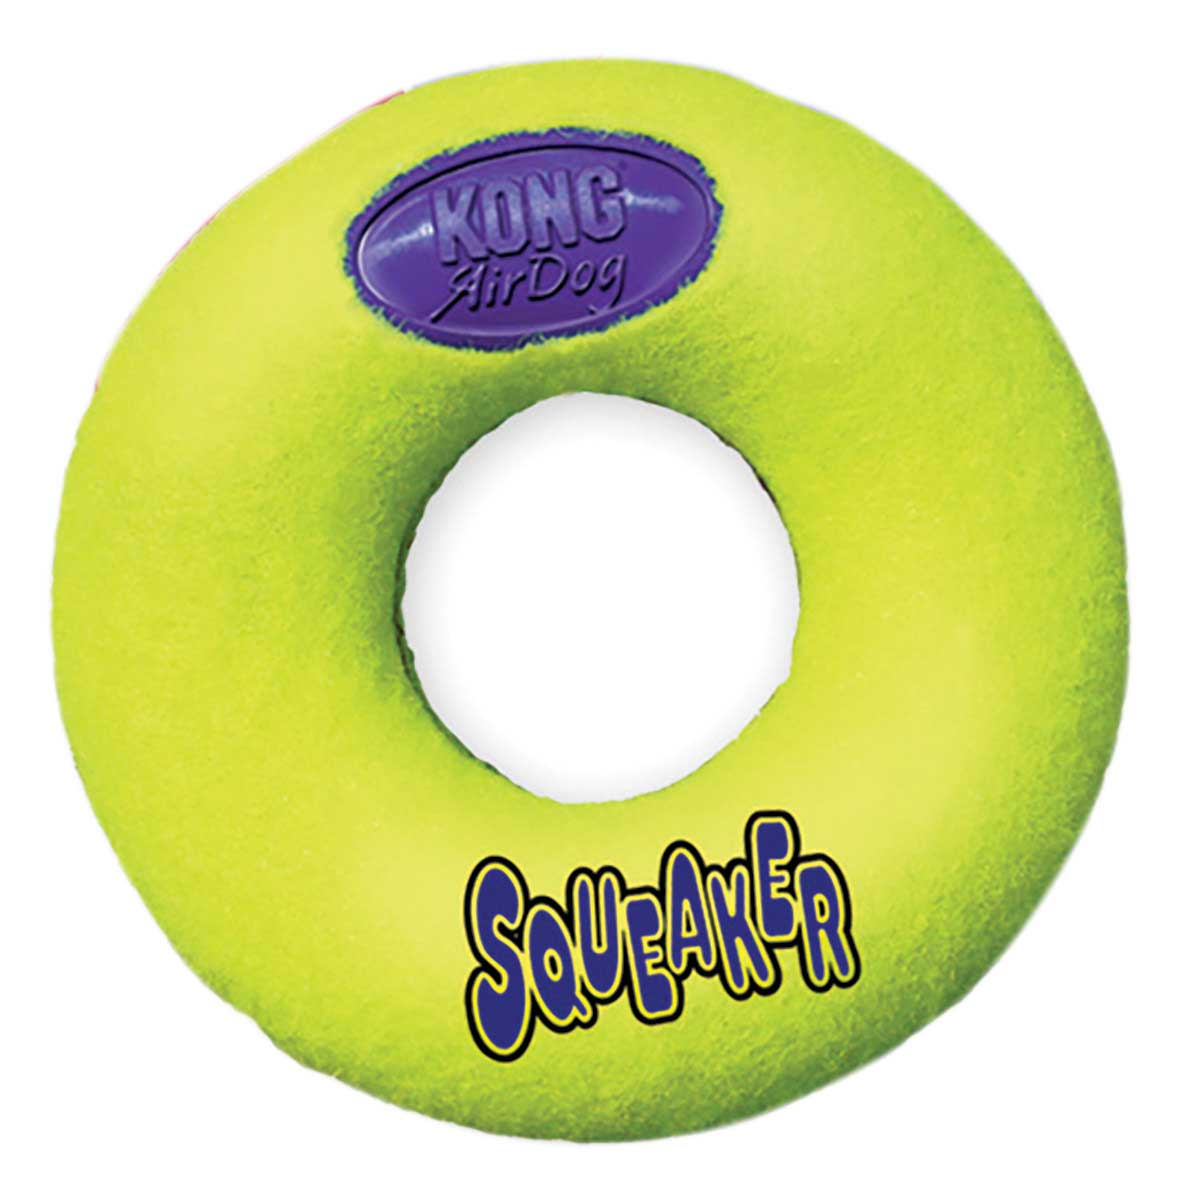 Medium KONG Air Dog Donut for Play time